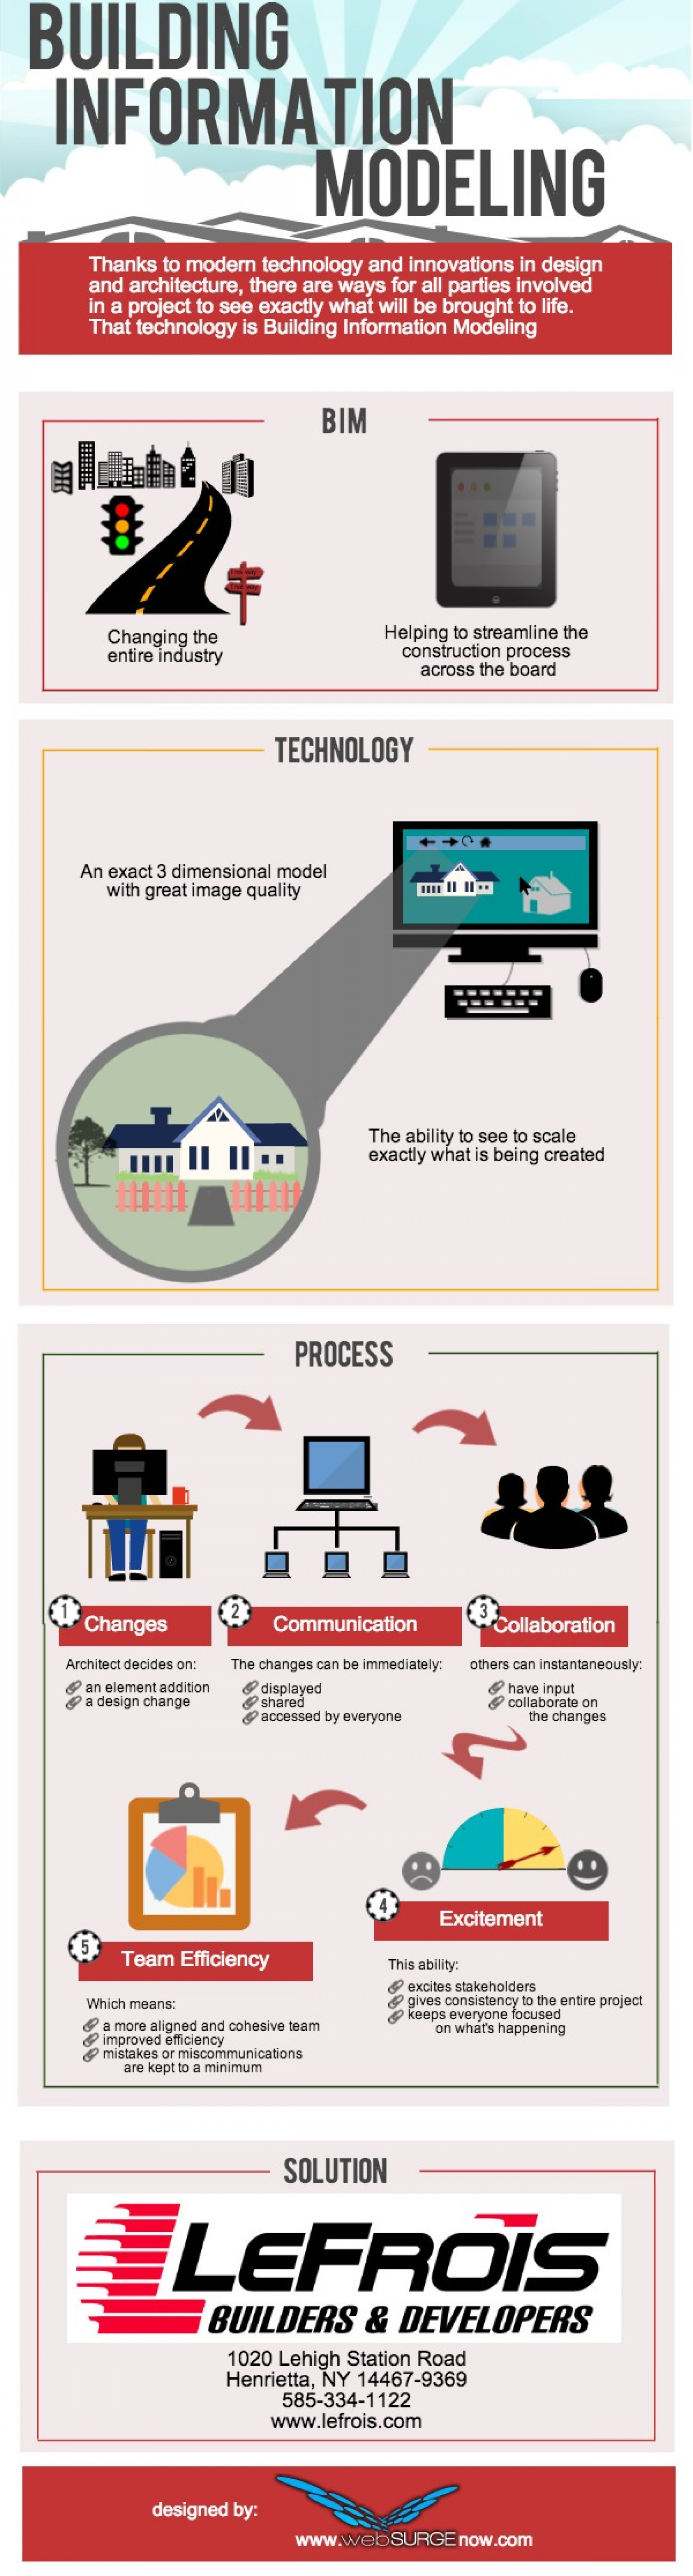 Building Information Modelling Infographic